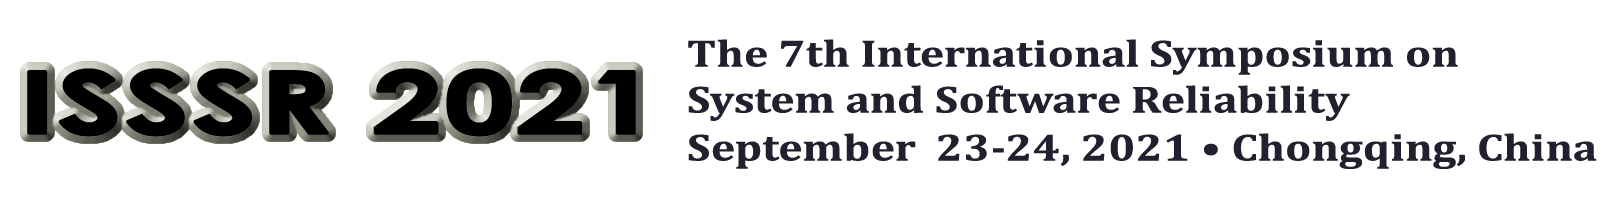 ISSSR 2021 September 23-24, 2021 in Chongqing, China. The 7th International Symposium on System and Software Reliability.